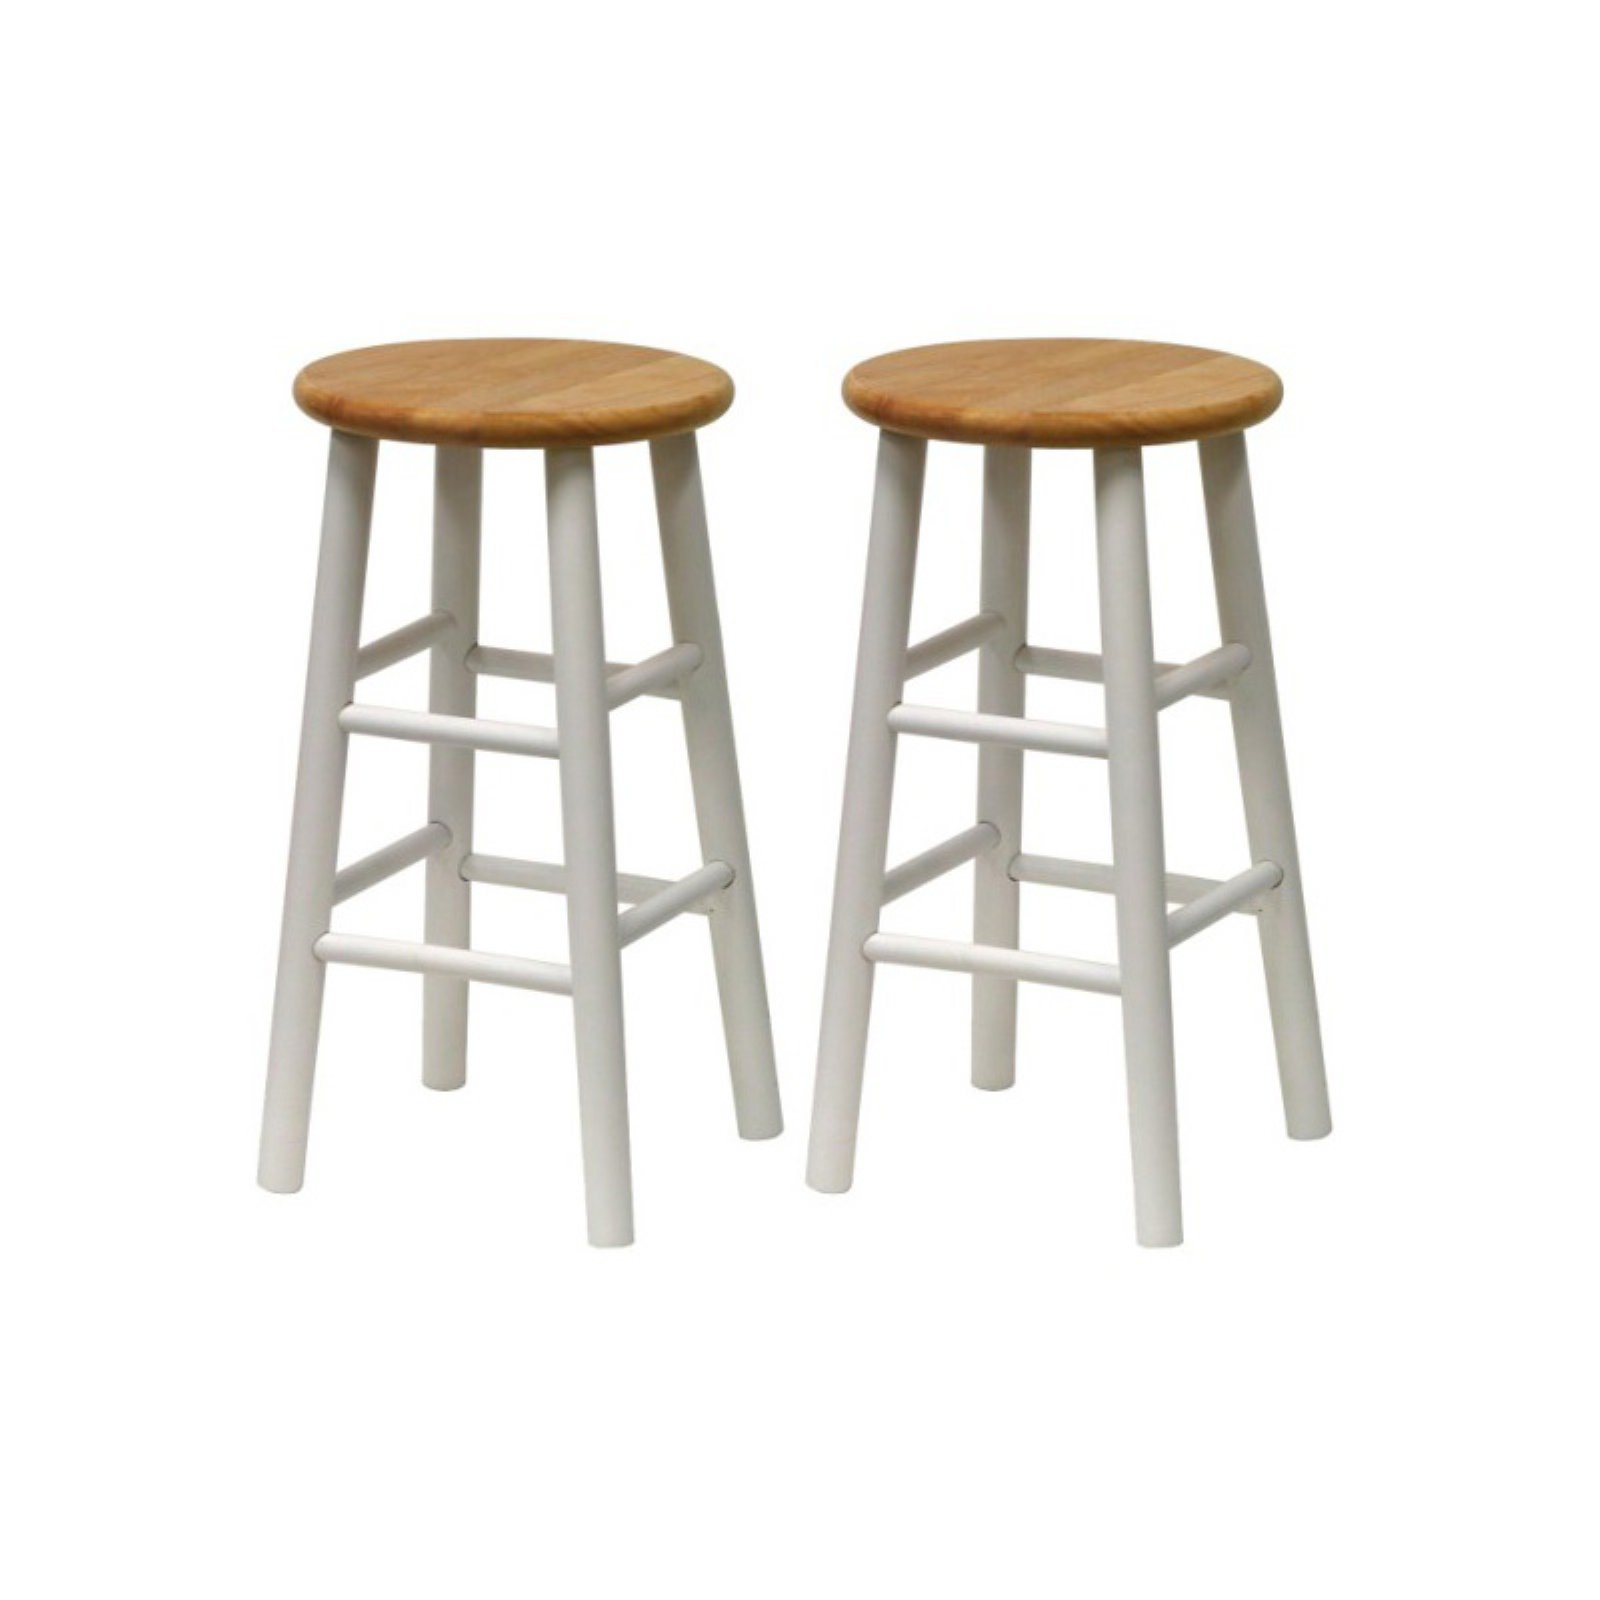 Winsome Wood Tabby 24 Beveled Seat Stools Set Of 2 Multiple